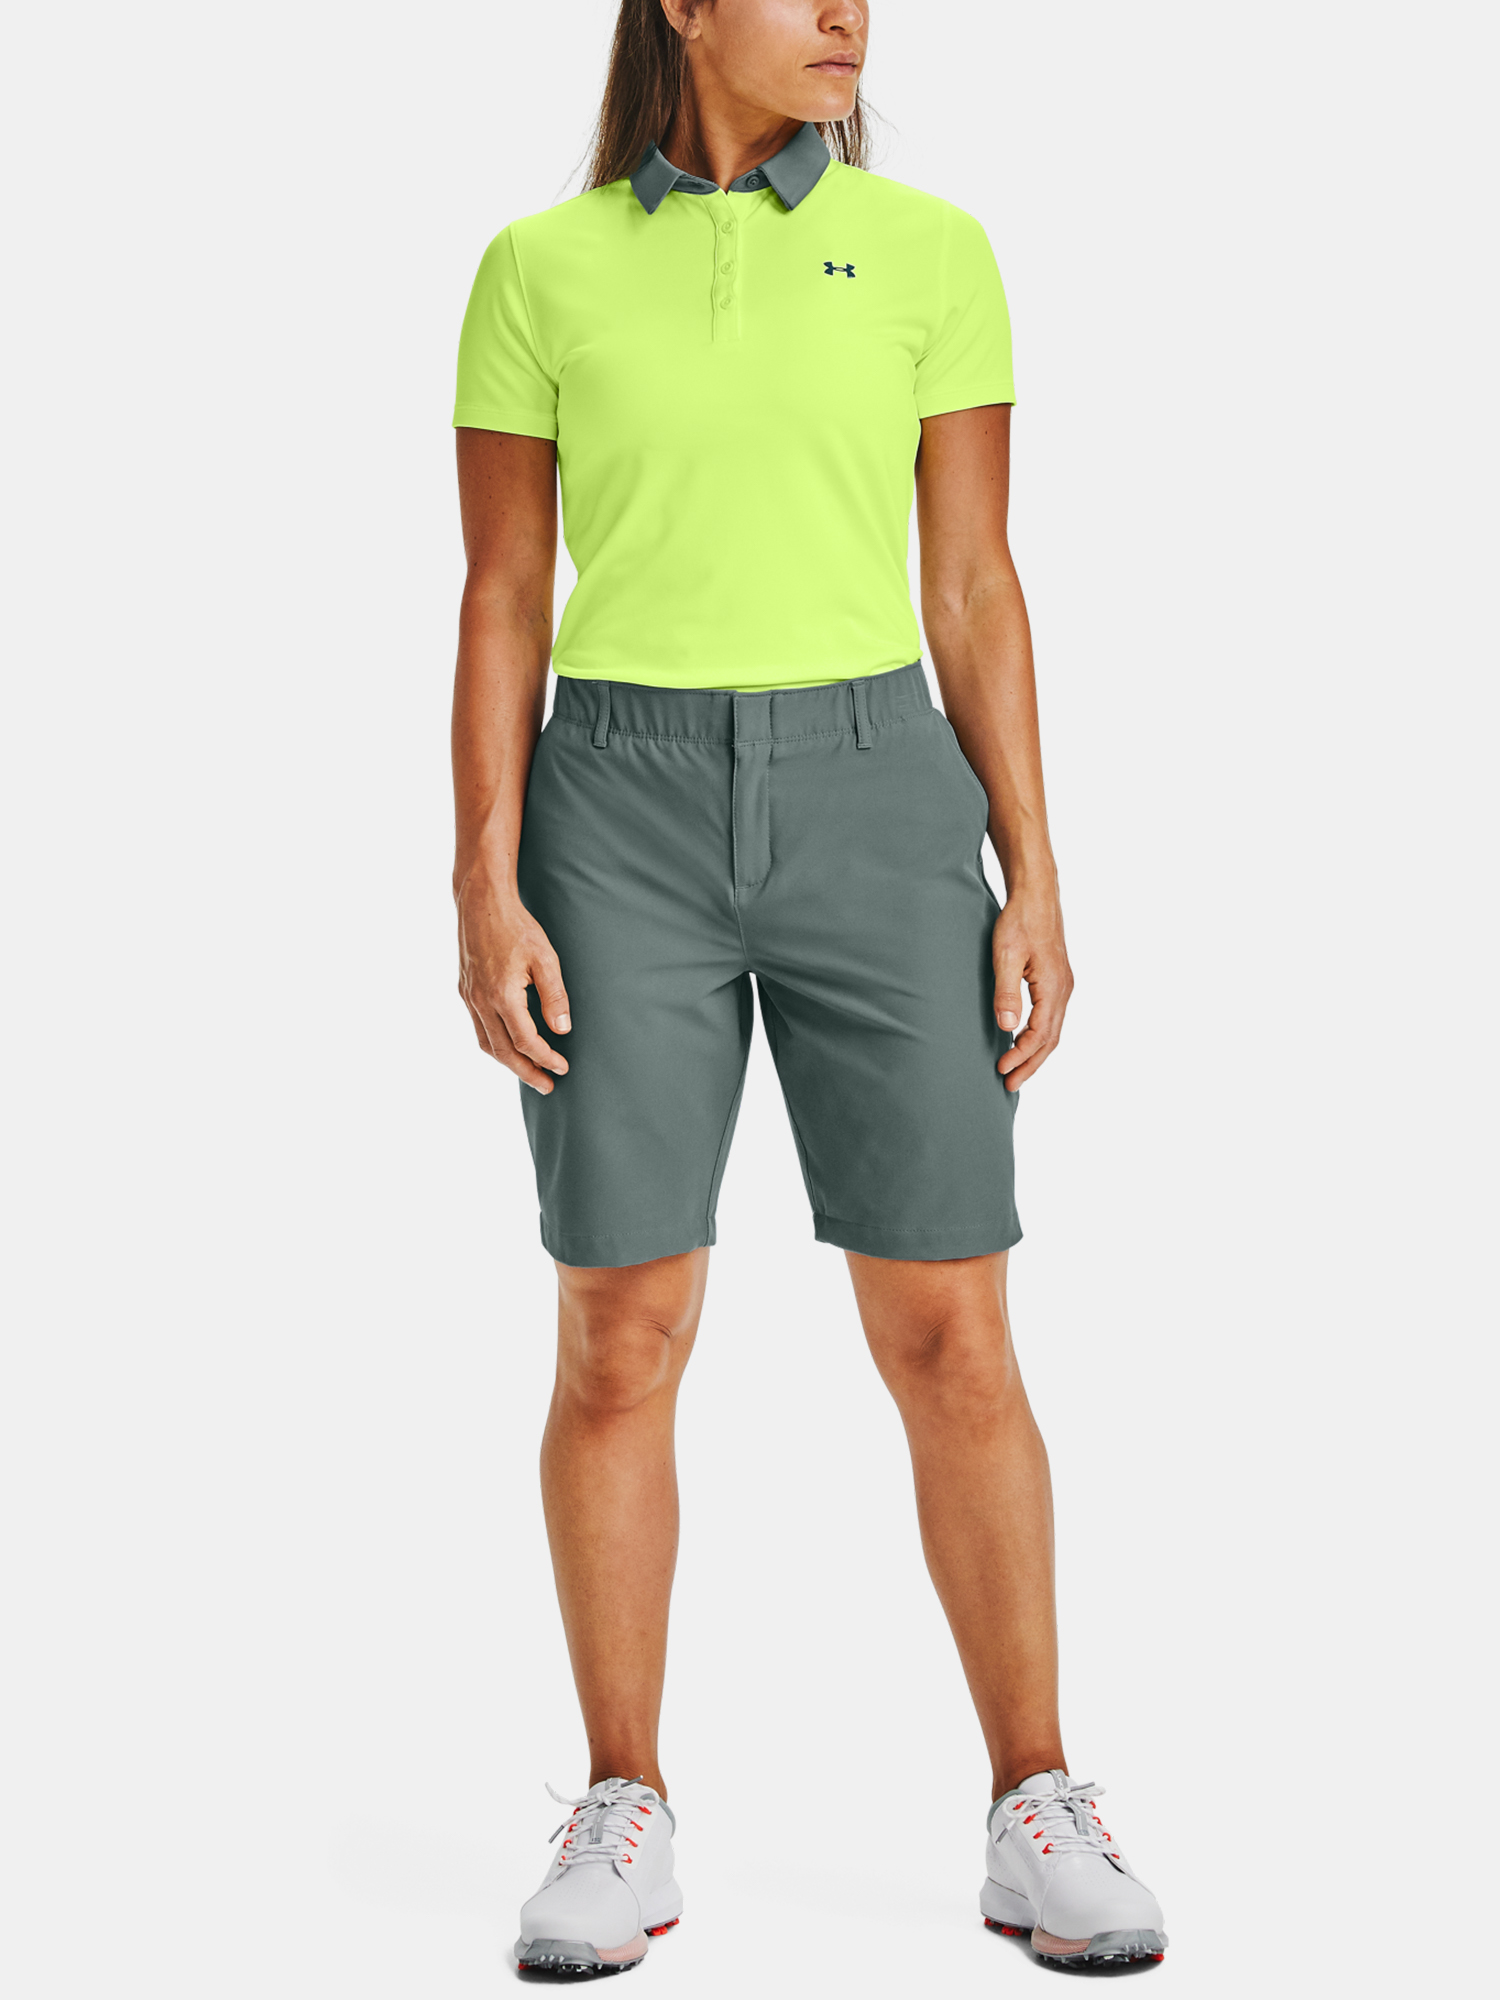 Tričko Under Armour Zinger Short Sleeve Polo (6)